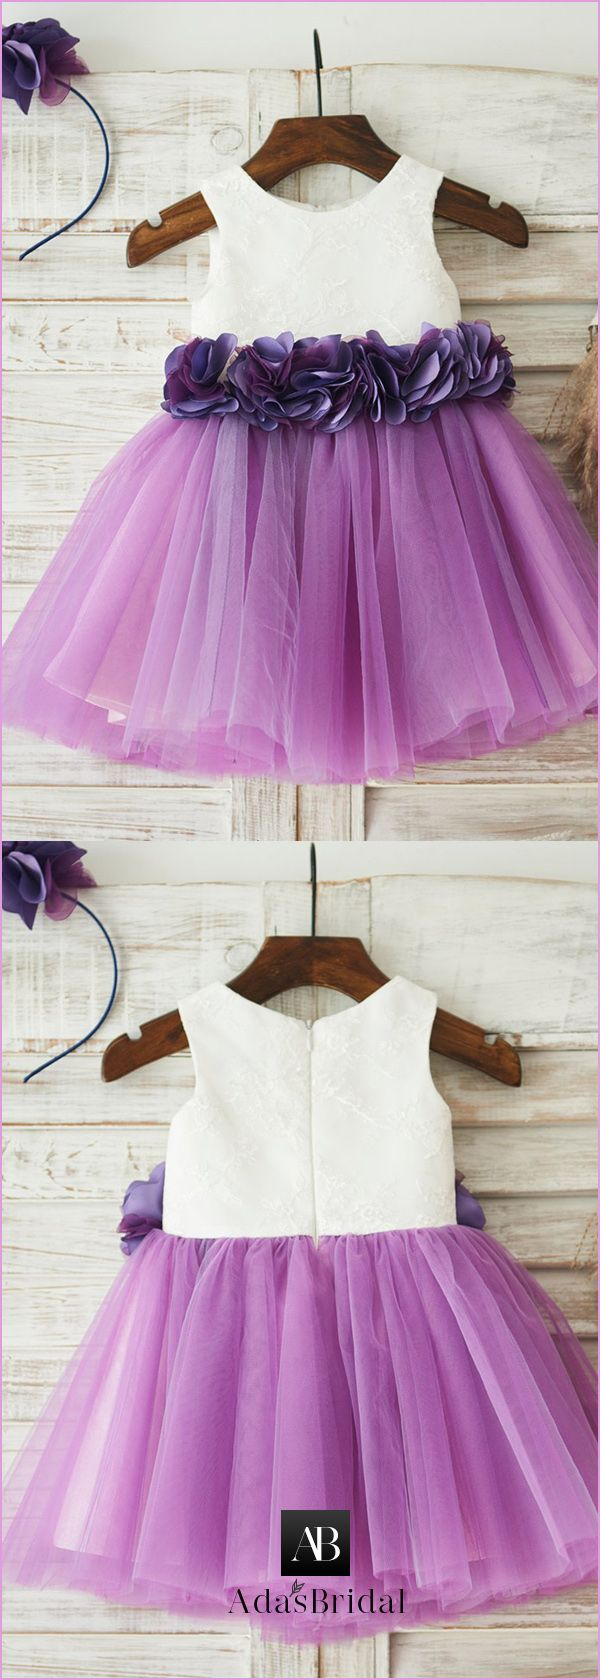 Stunning Lace & Tulle Scoop Neckline Short Length Ball Gown Flower ...